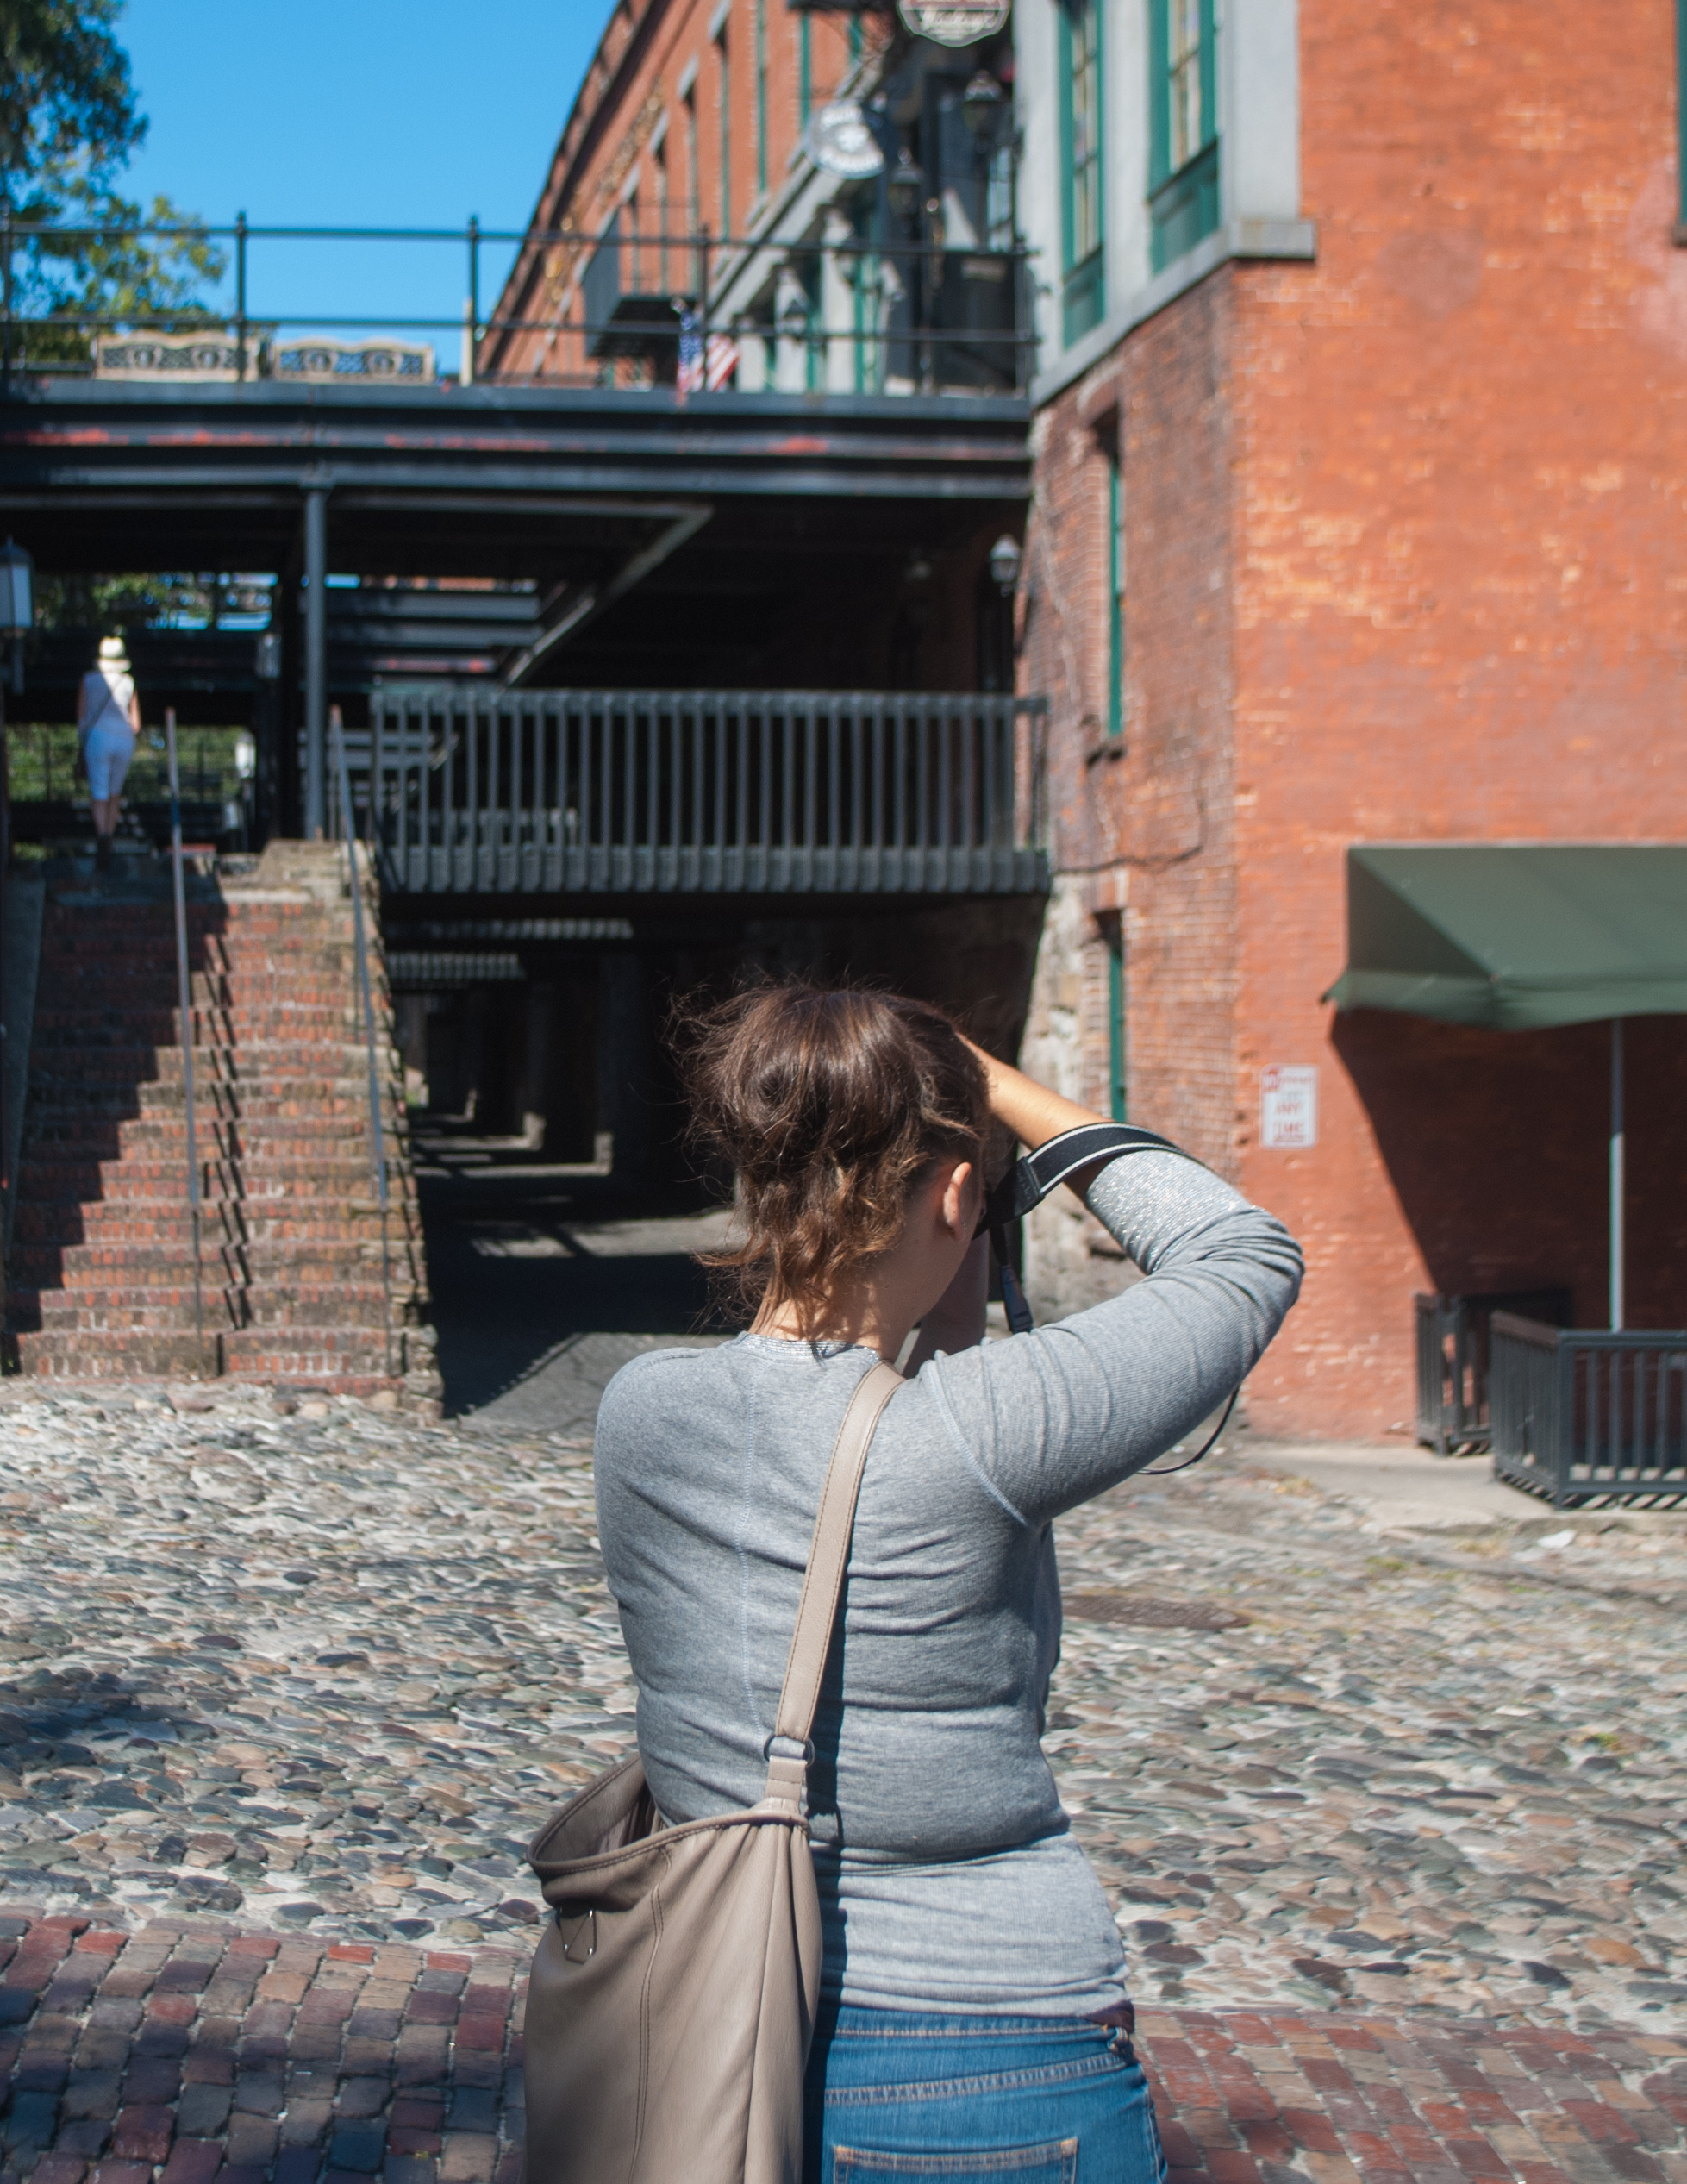 ©2014 Capturing Savannah_Cleints on Tour_River St.